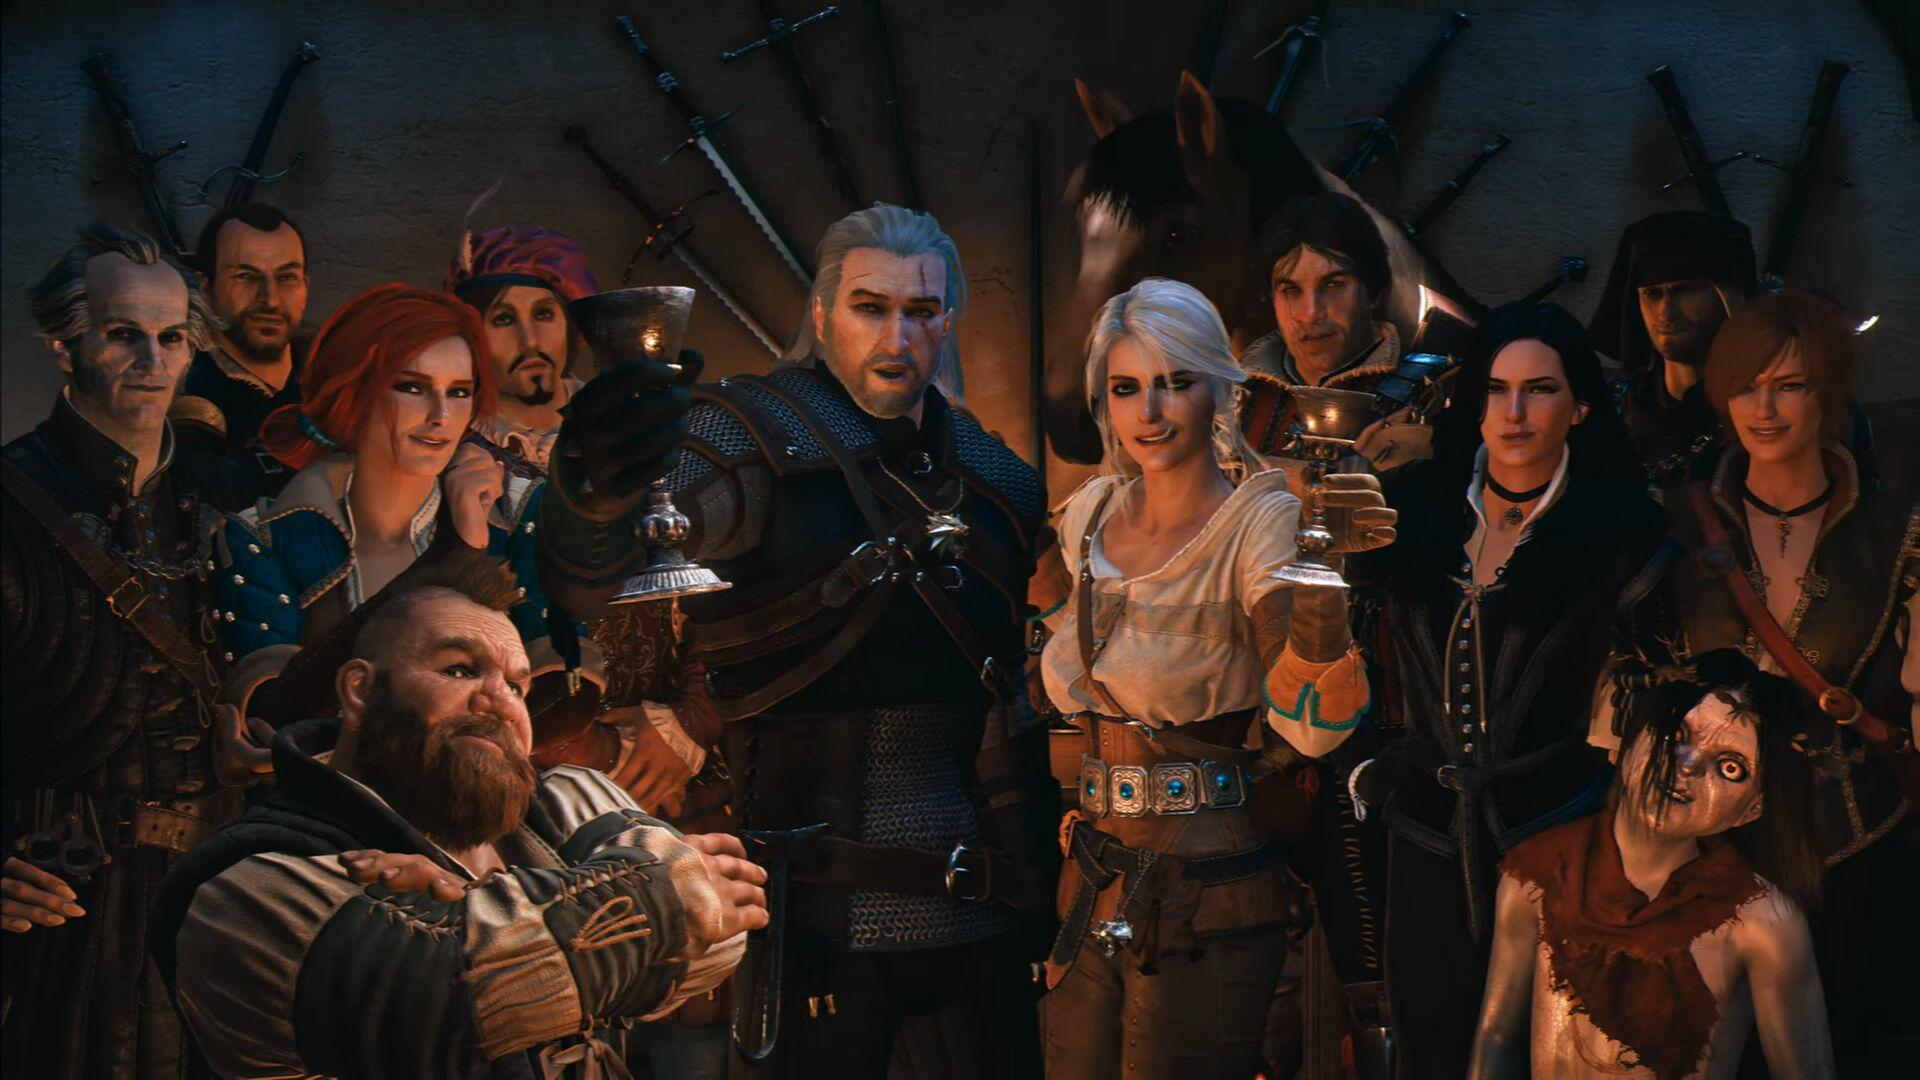 The Witcher is Airing on Netflix This Fall